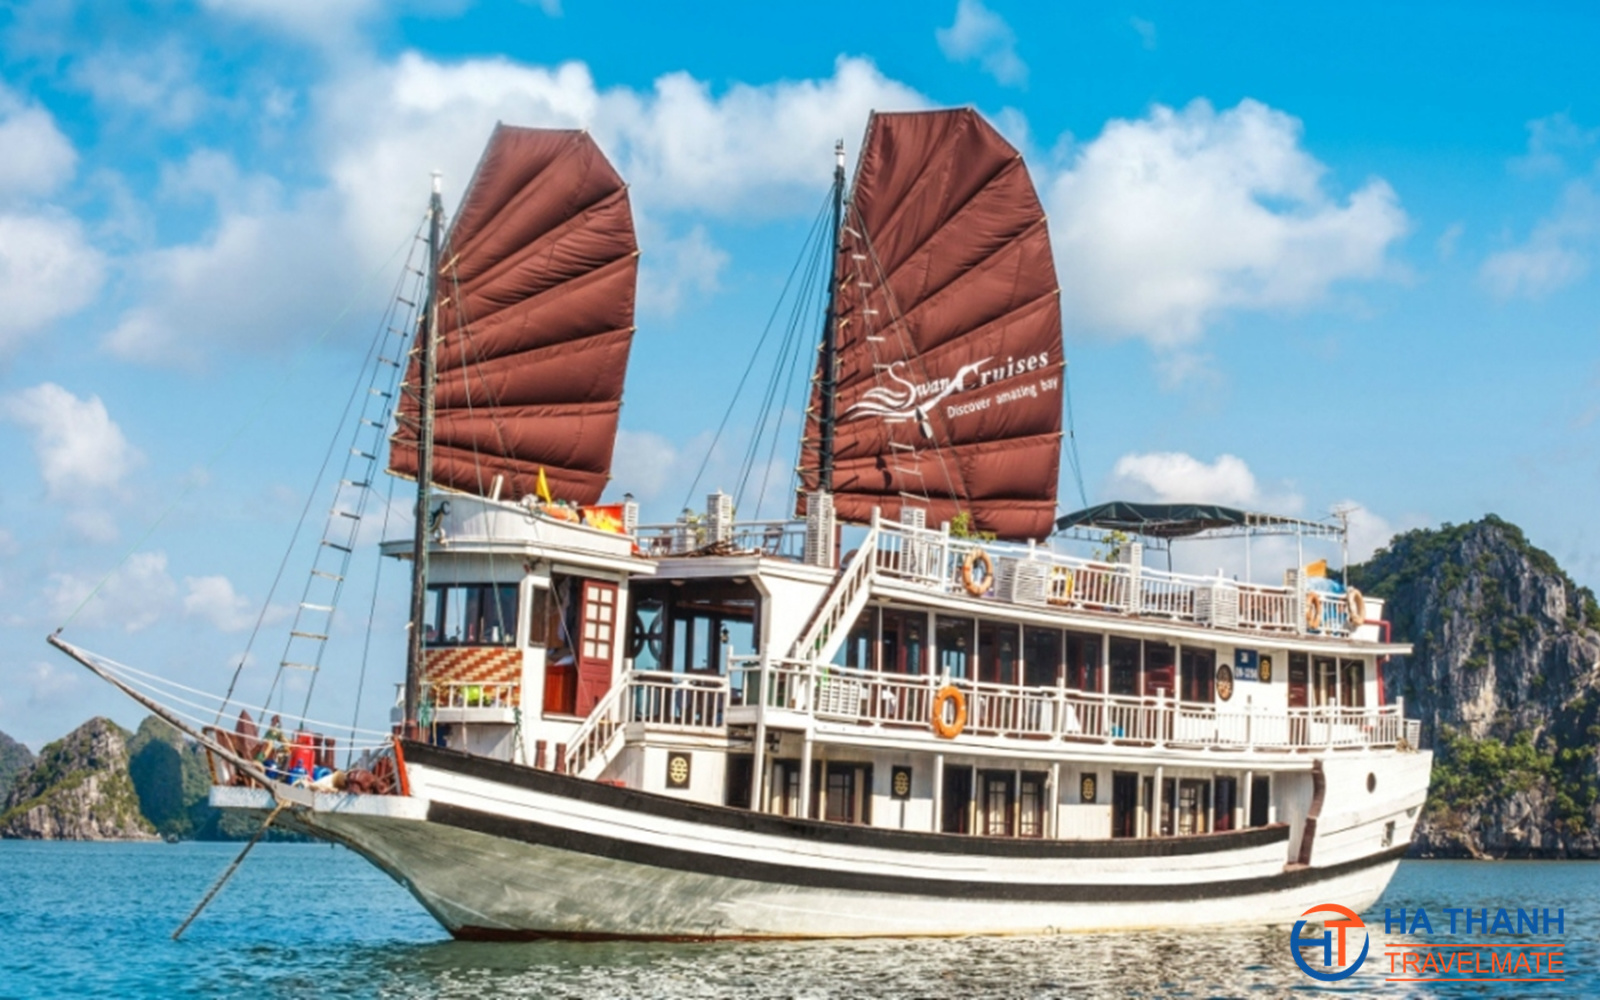 Swan Boutique Cruise 3 days/2 nights